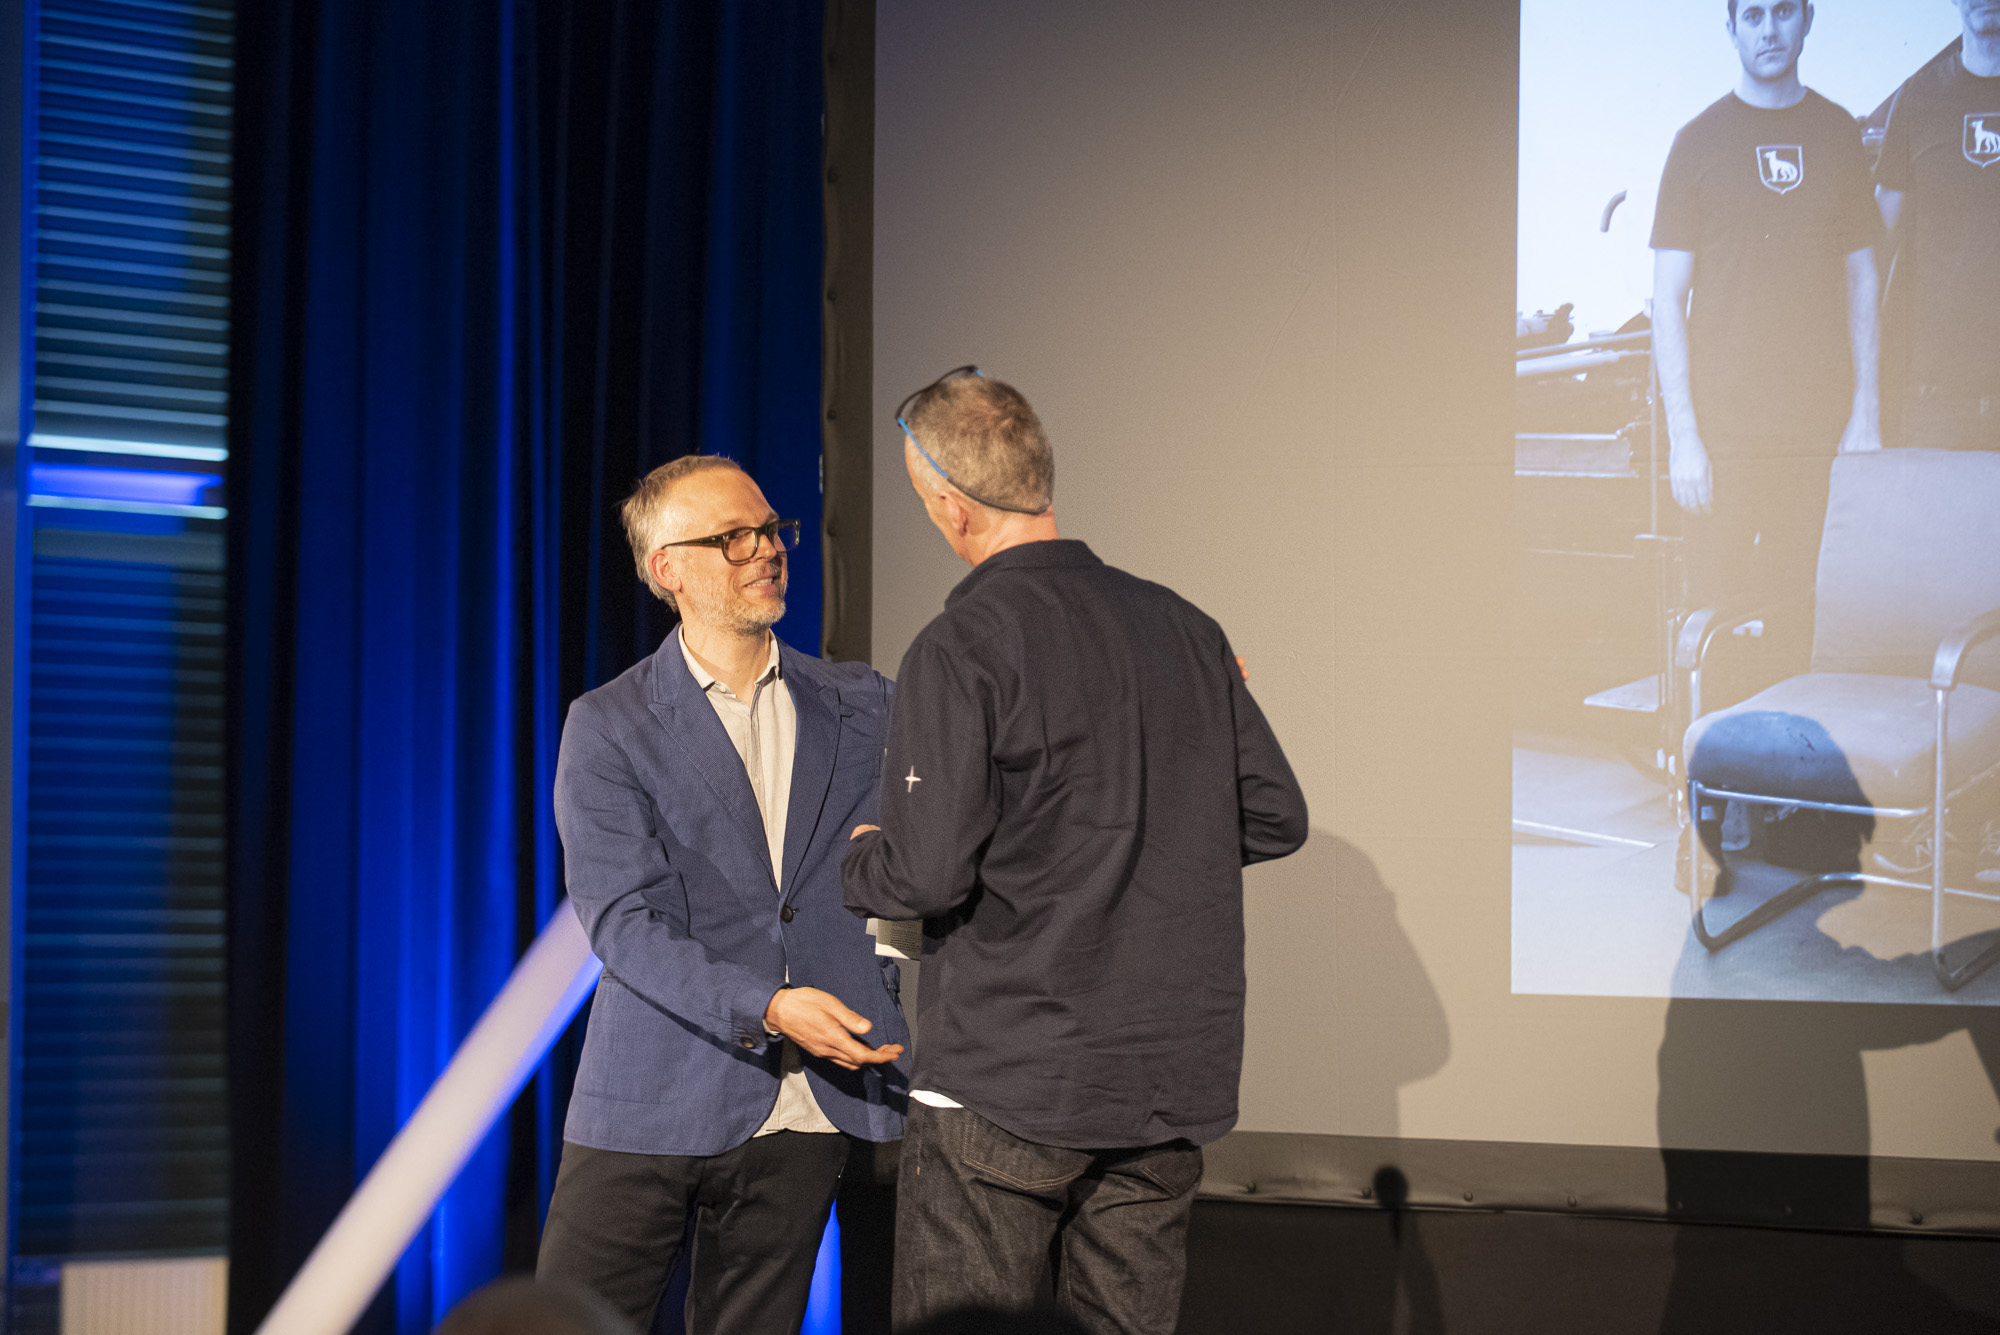 Swiss Design Awards ceremony, Laurent Benner and Thomi Wolfensberger